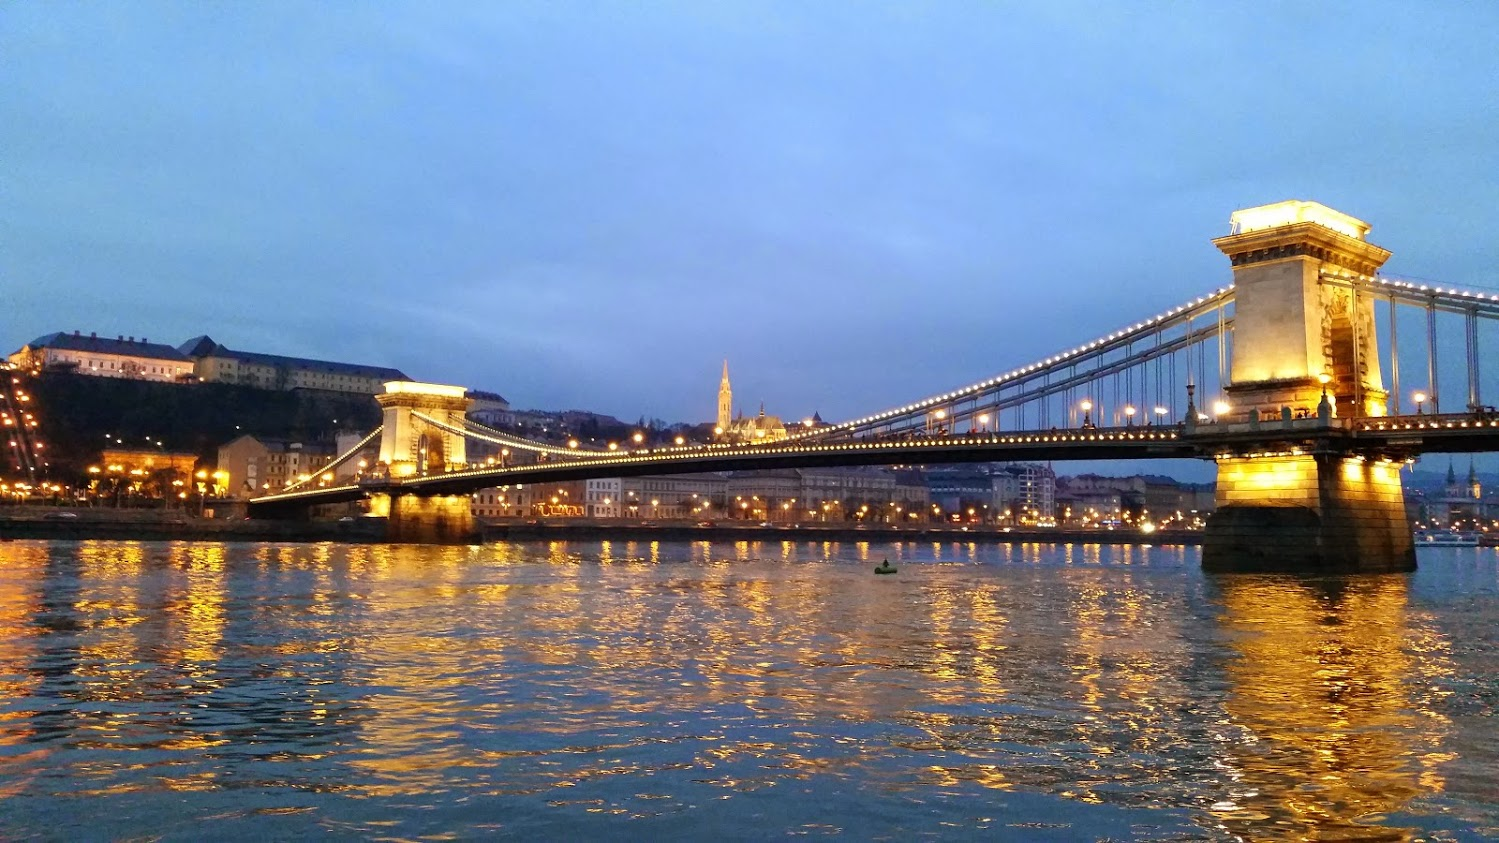 The bridge from Buda to Pest taken from our cruise ship window at sunset.